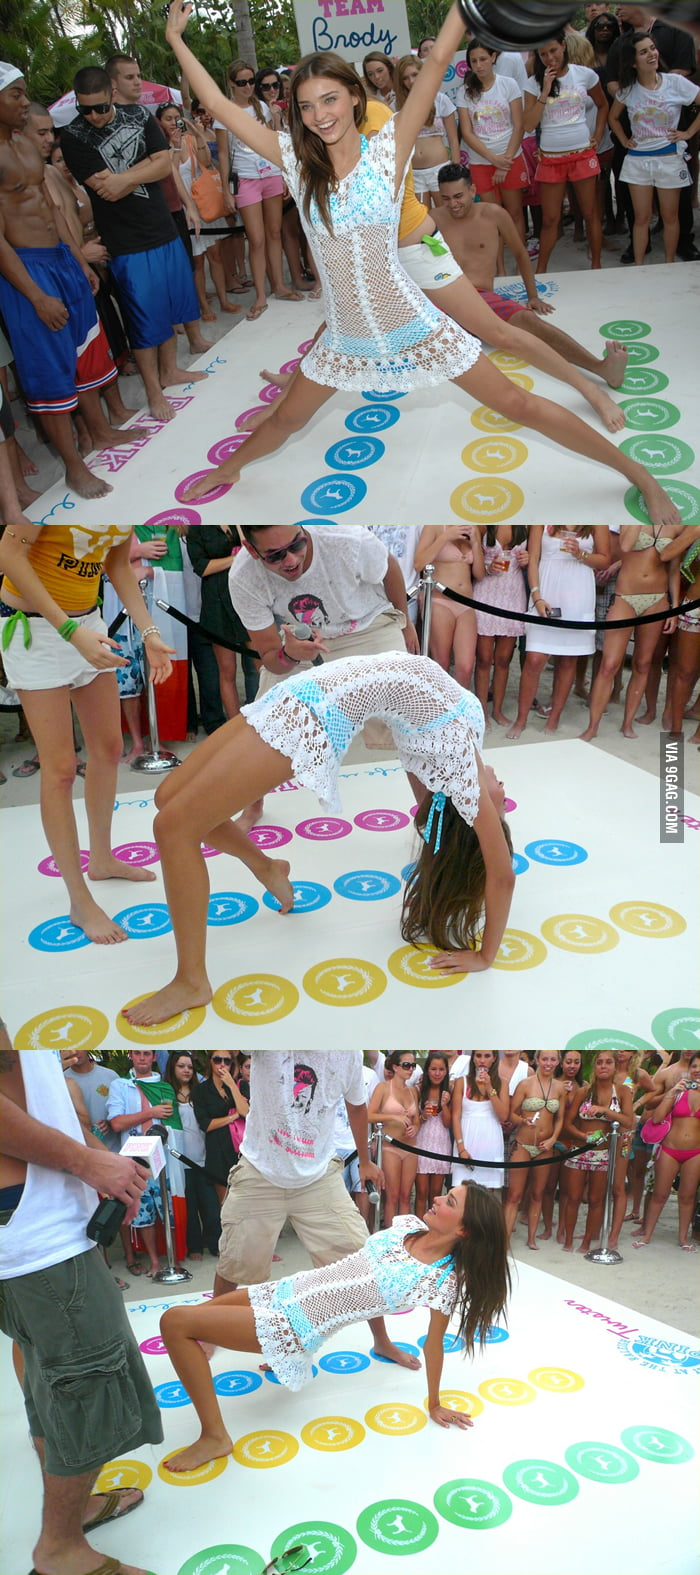 Miranda Kerr is the Twister Queen!